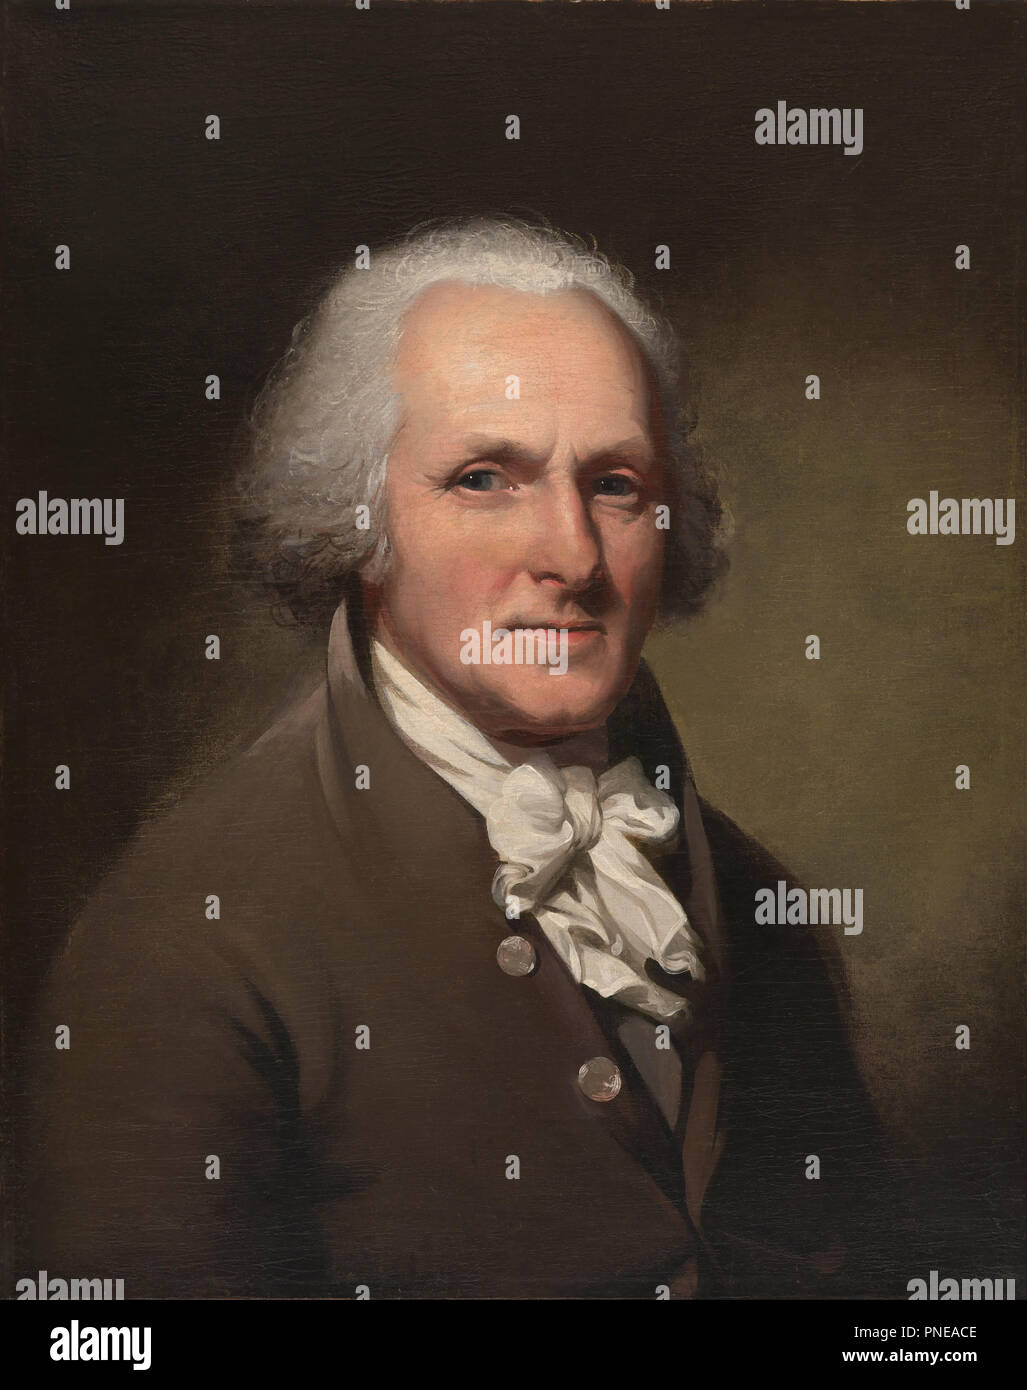 Charles Willson Peale Self-Portrait. Date/Period: Ca. 1791. Painting. Oil on canvas. Height: 848 mm (33.38 in); Width: 721 mm (28.38 in). - Stock Image